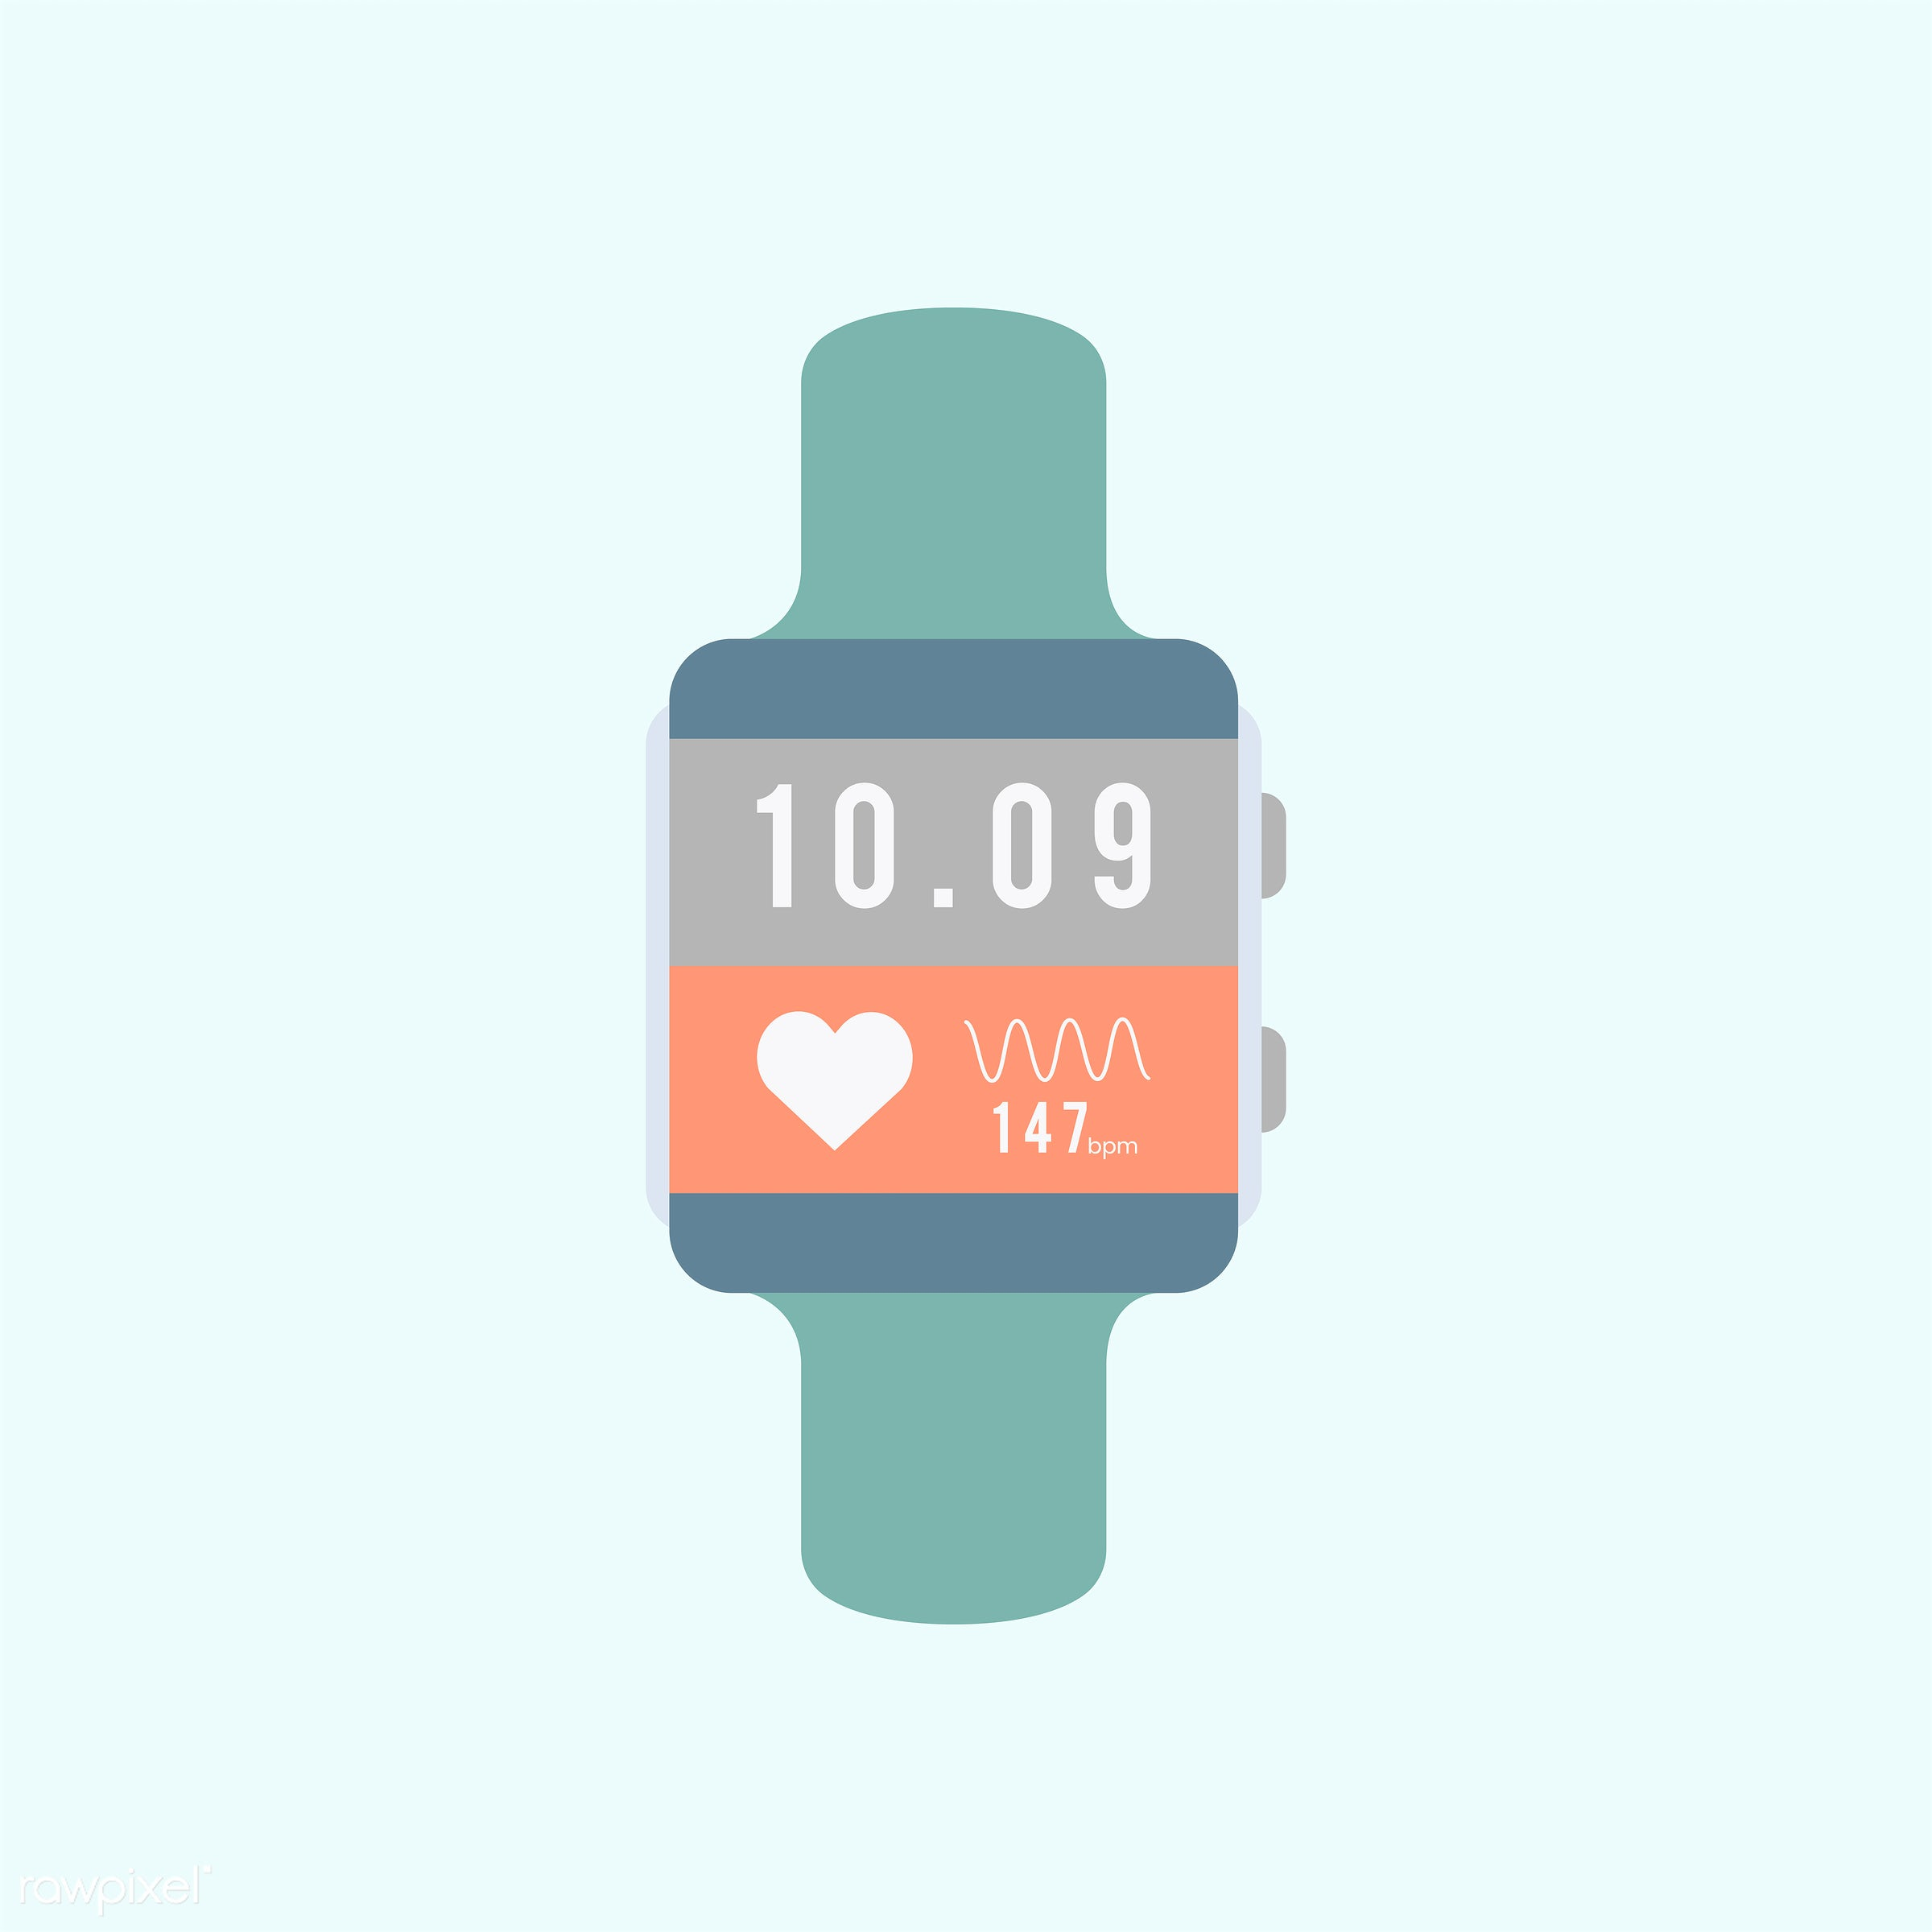 Smart watch vector - blue, device, digital, digital device, gadget, graphic, heart rate monitor, illustration, internet,...